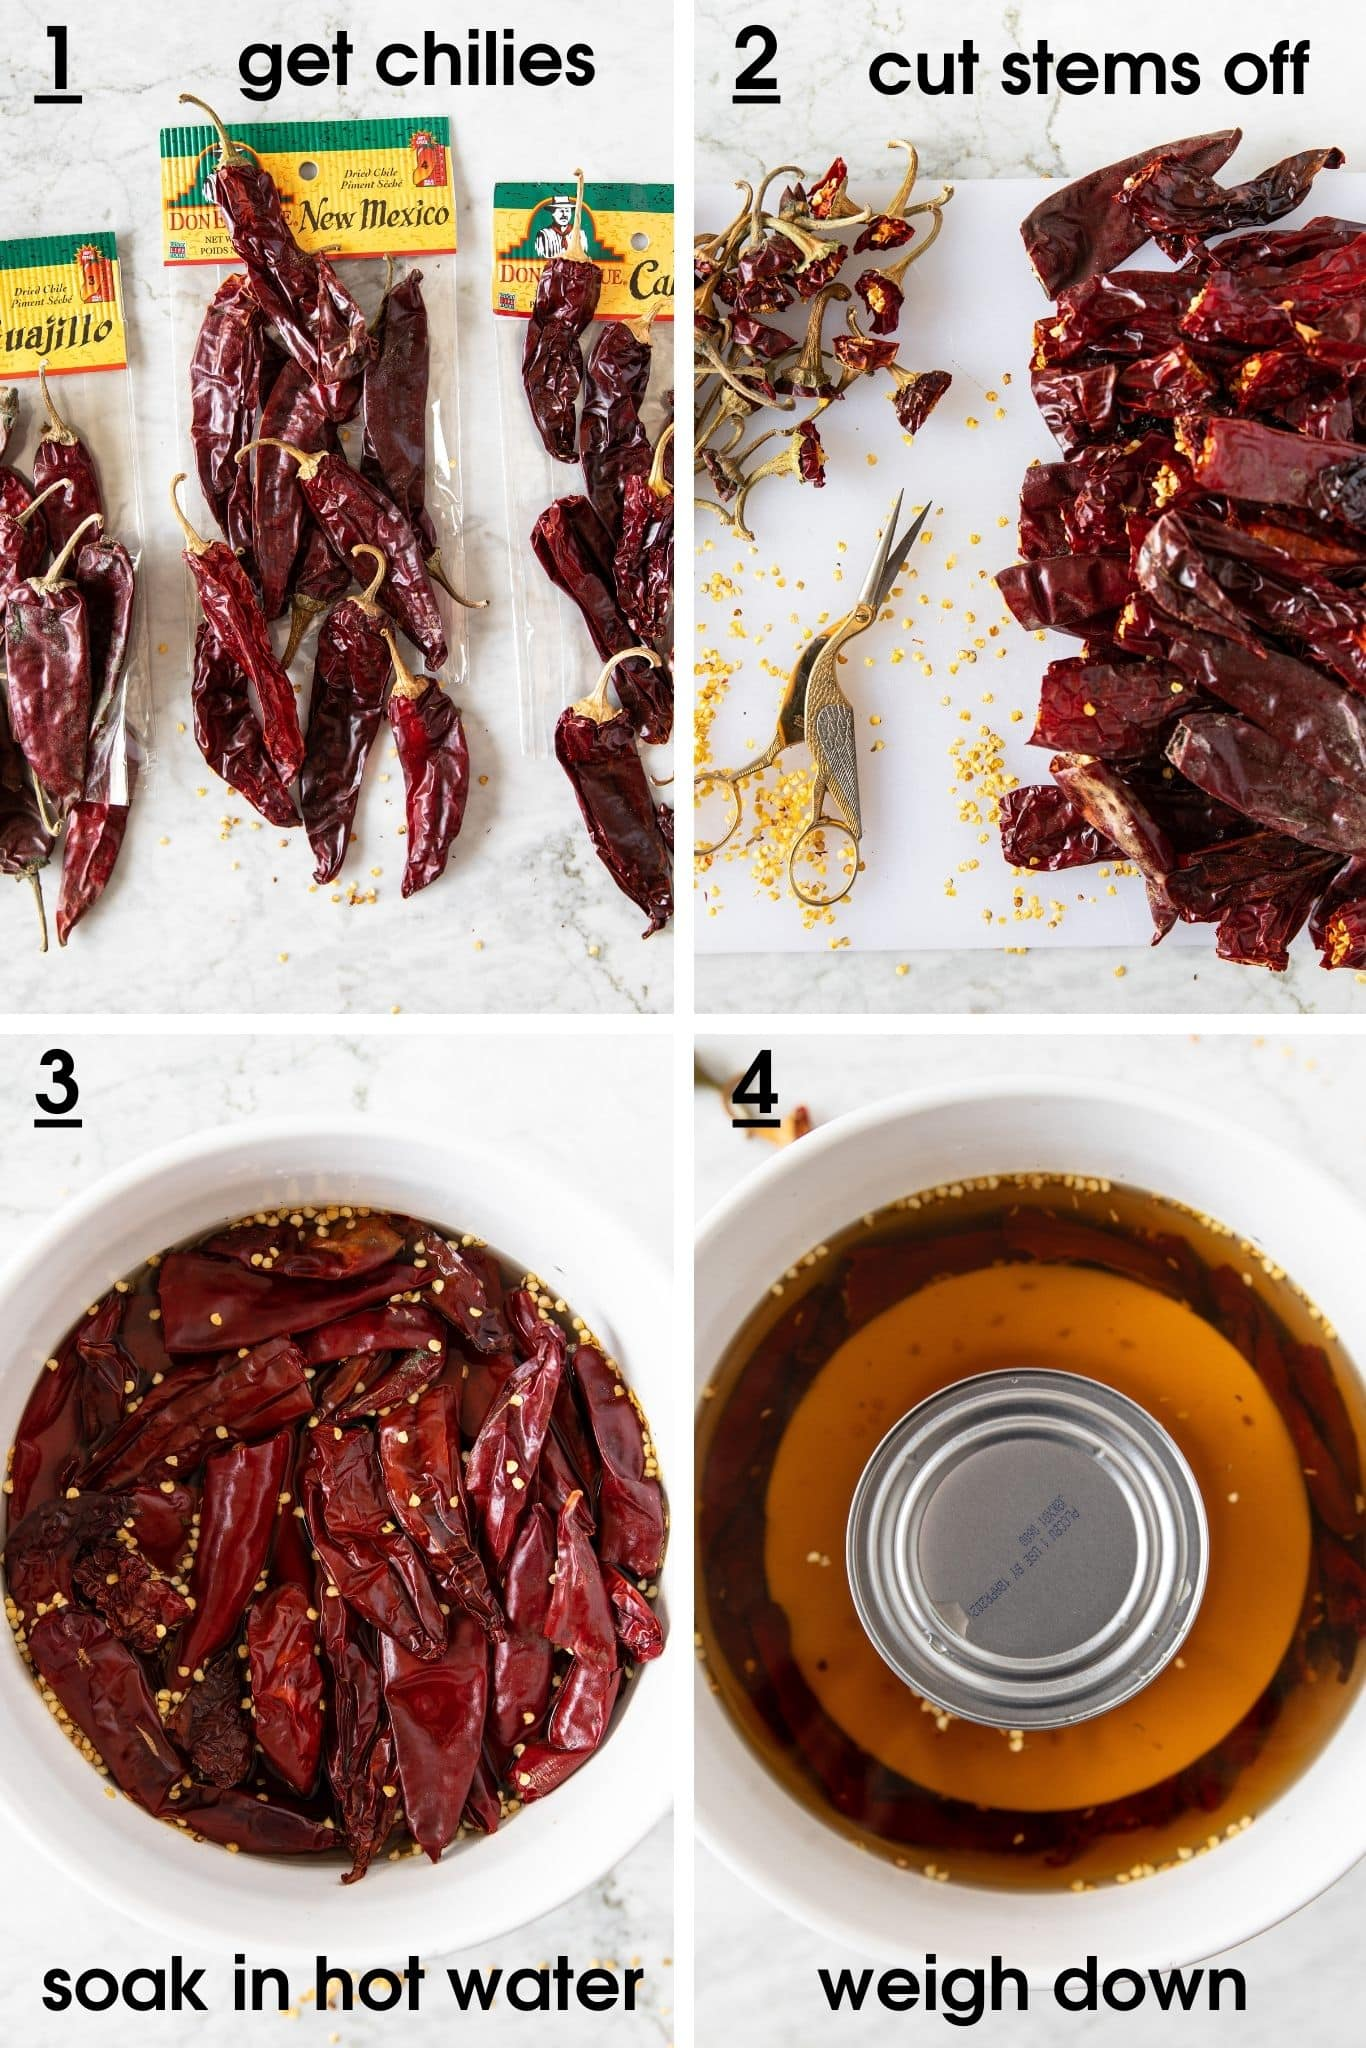 How to trim and soak dried chilies in water for spicy Harissa paste | from verygoodcook.com